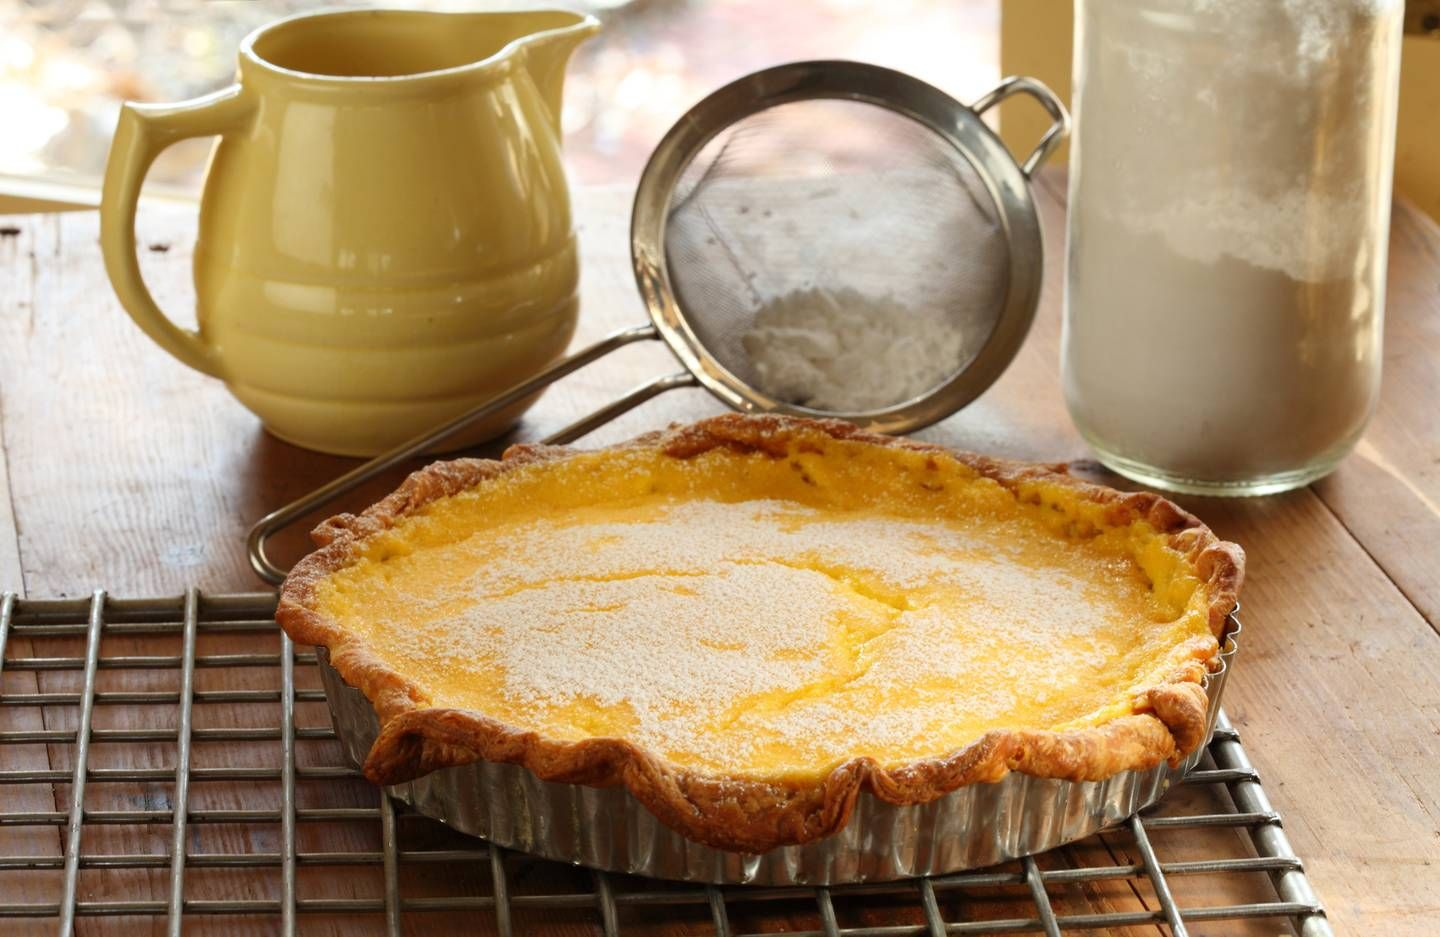 Lemon Curd Tart With Sour Cream Pastry Maggie Beer Sour Cream Pastry Lemon Curd Tart Lemon Tart